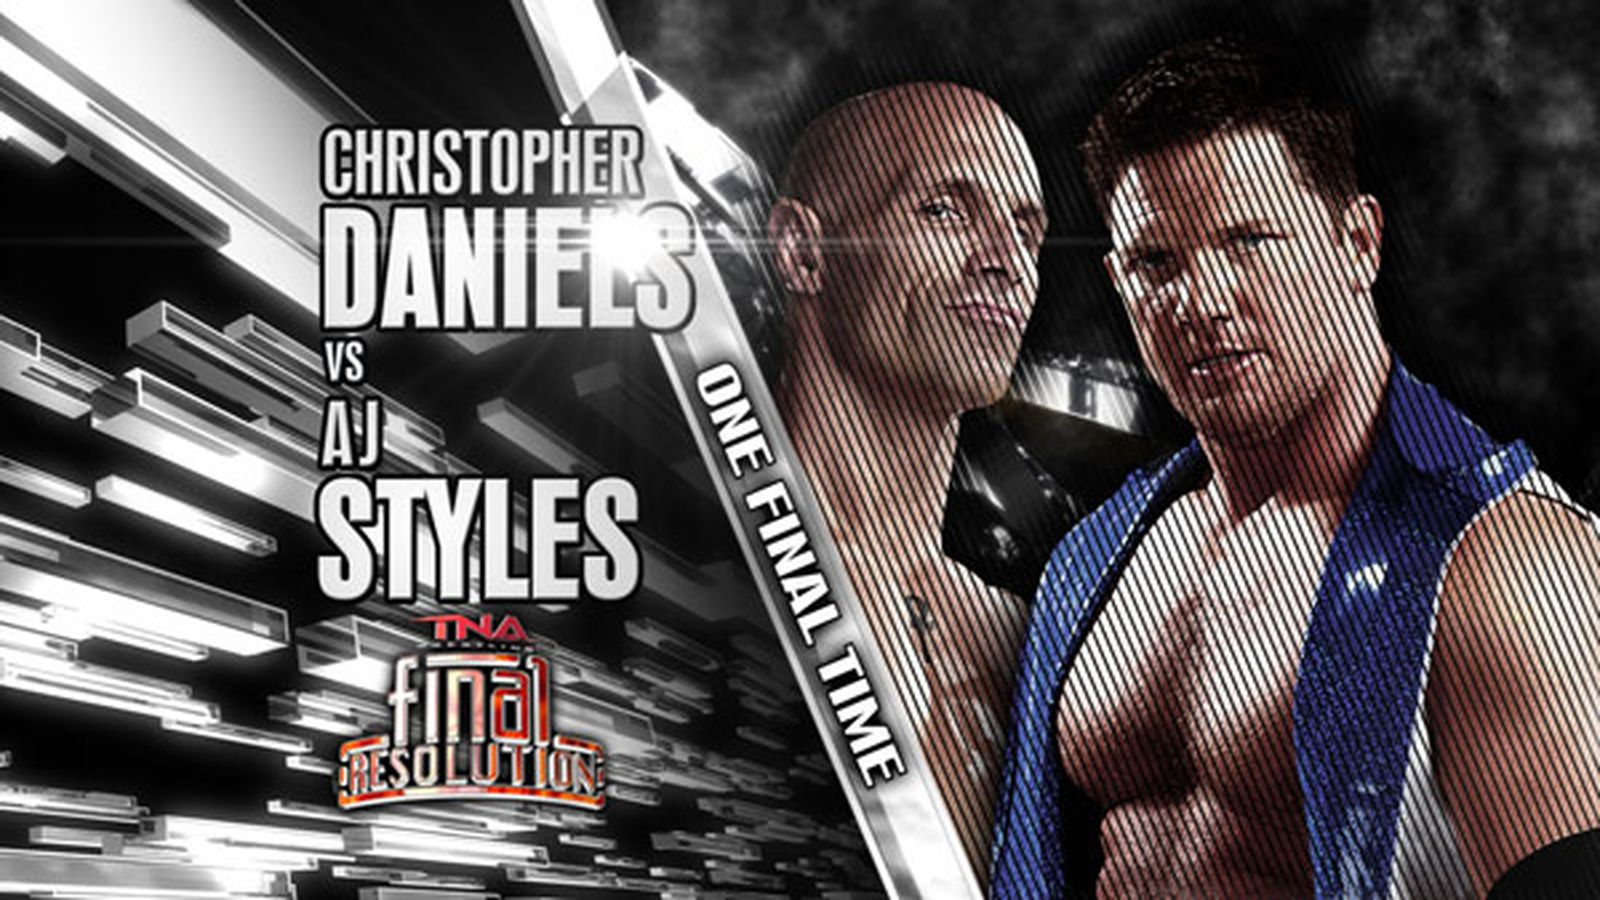 aj styles vs christopher daniels full match video preview for tna final resolution 2012. Black Bedroom Furniture Sets. Home Design Ideas